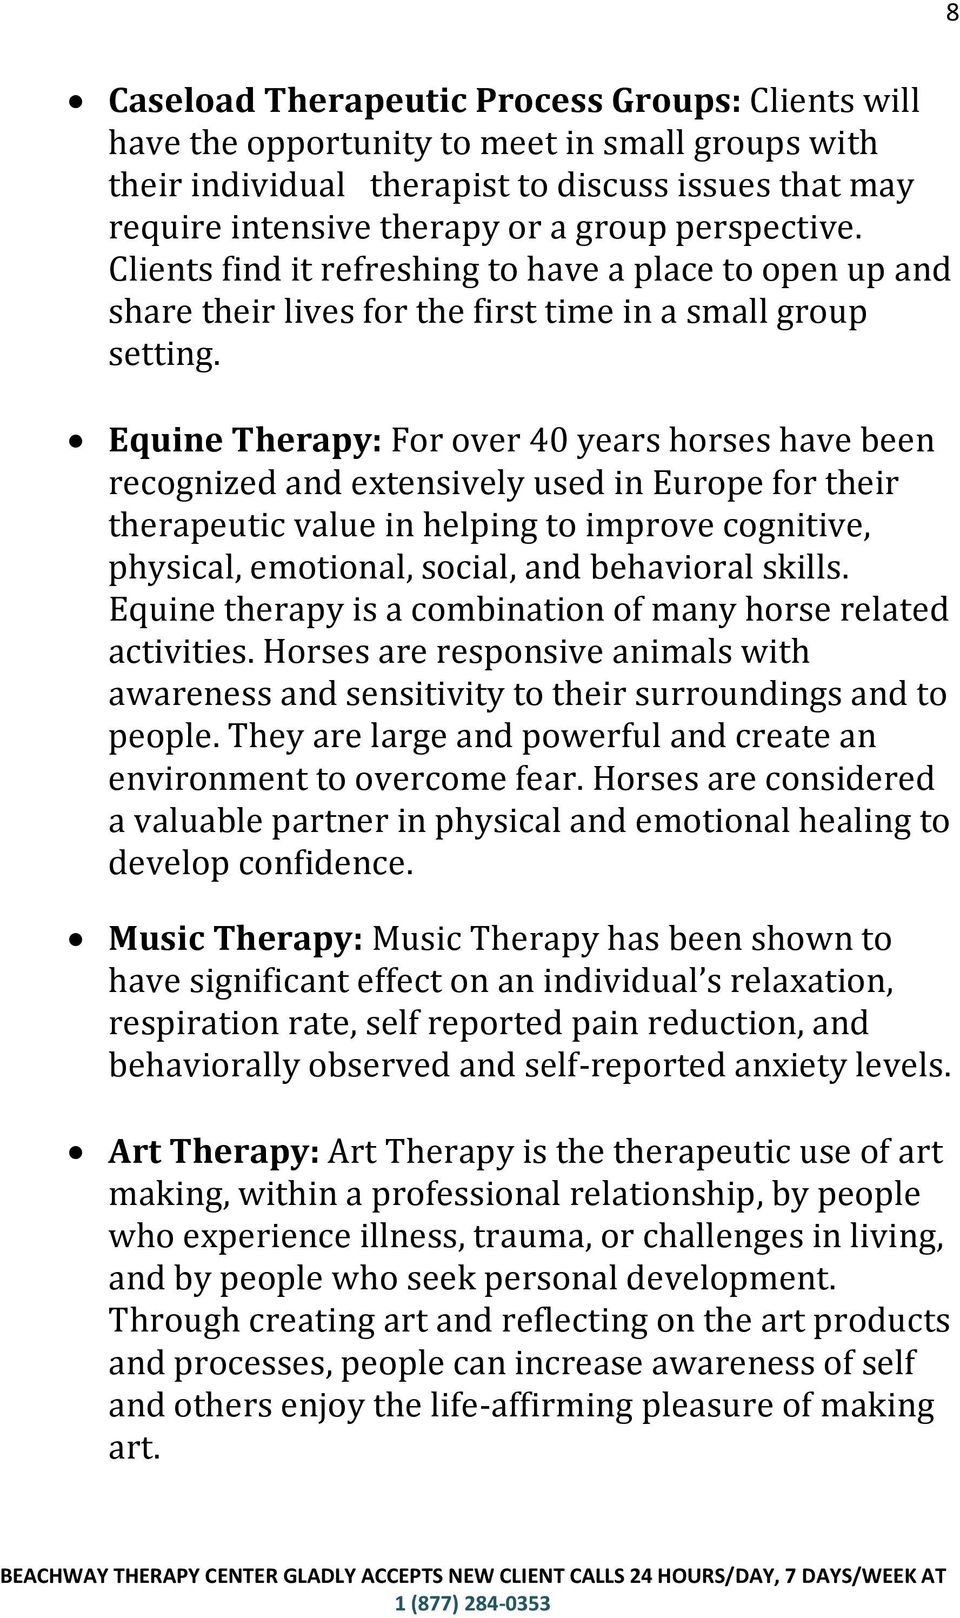 Equine Therapy: For over 40 years horses have been recognized and extensively used in Europe for their therapeutic value in helping to improve cognitive, physical, emotional, social, and behavioral